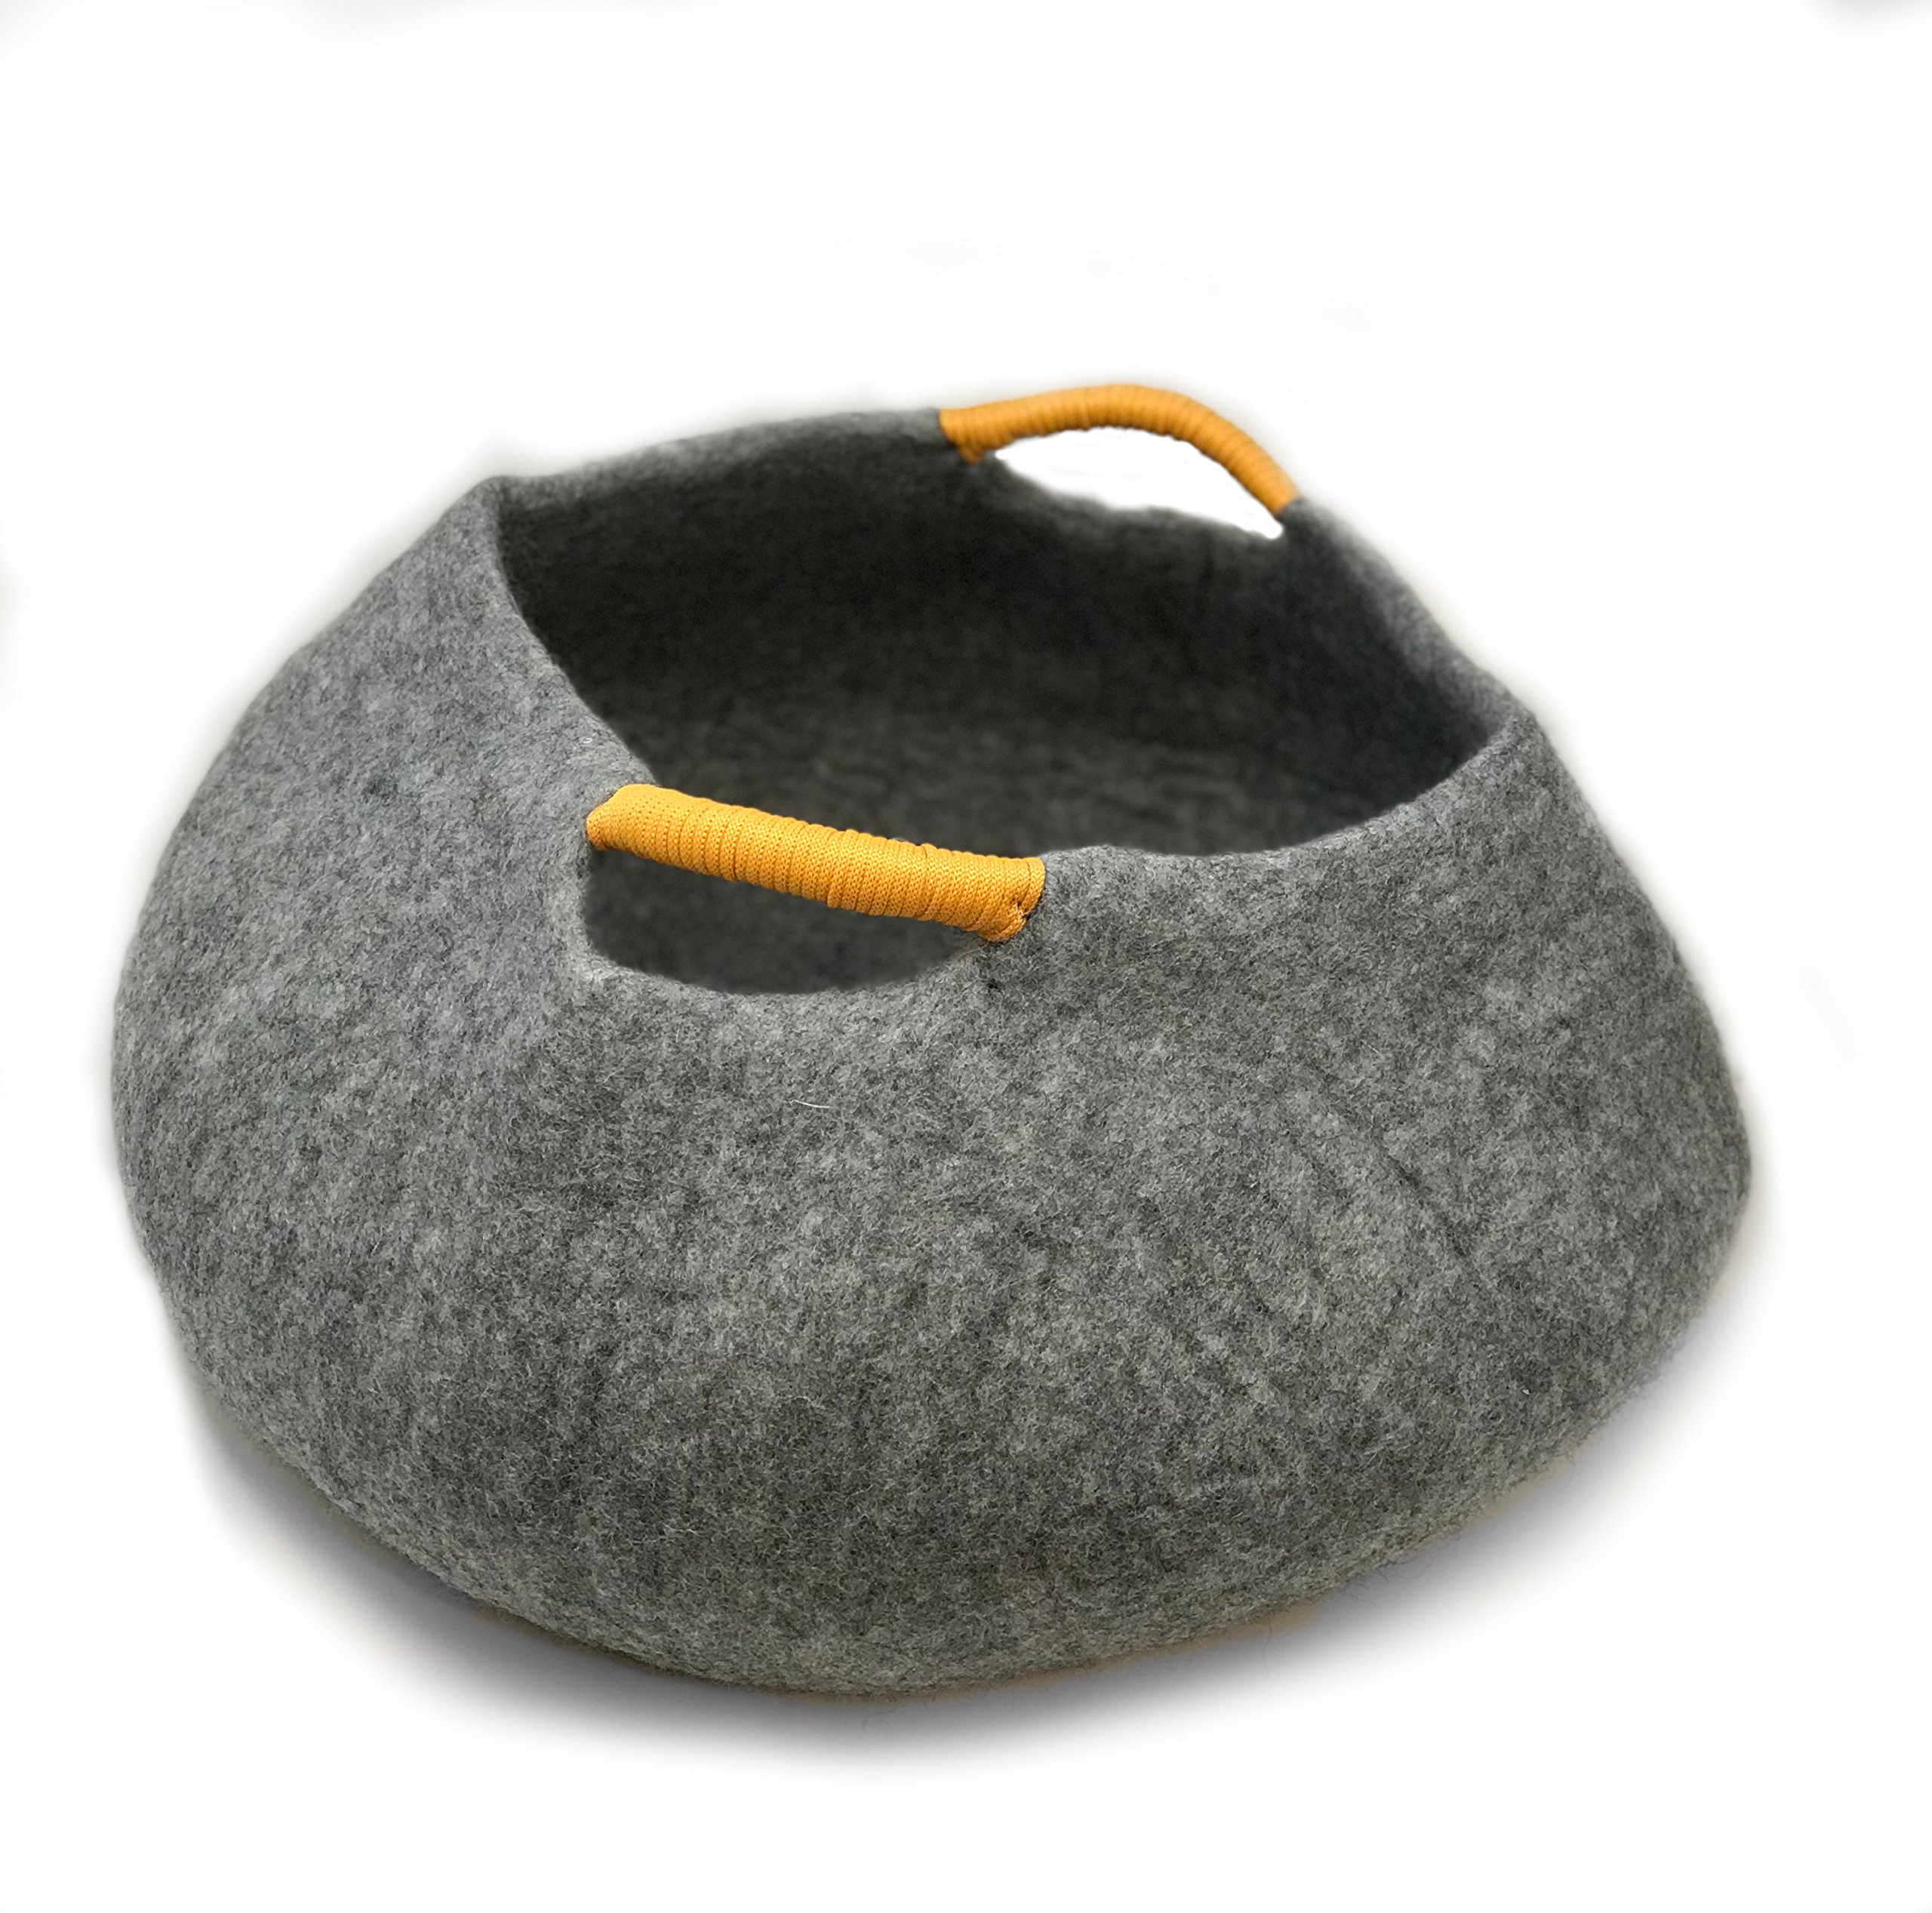 100% Natural Wool LARGE Cat Basket - Handmade Premium Shaped Felt - Makes Great Cat House and Bed for Kitty. For Indoor Cozy Hideaway. Large Soft Bed Area. Store Cat Toys As Well. By iPrimio